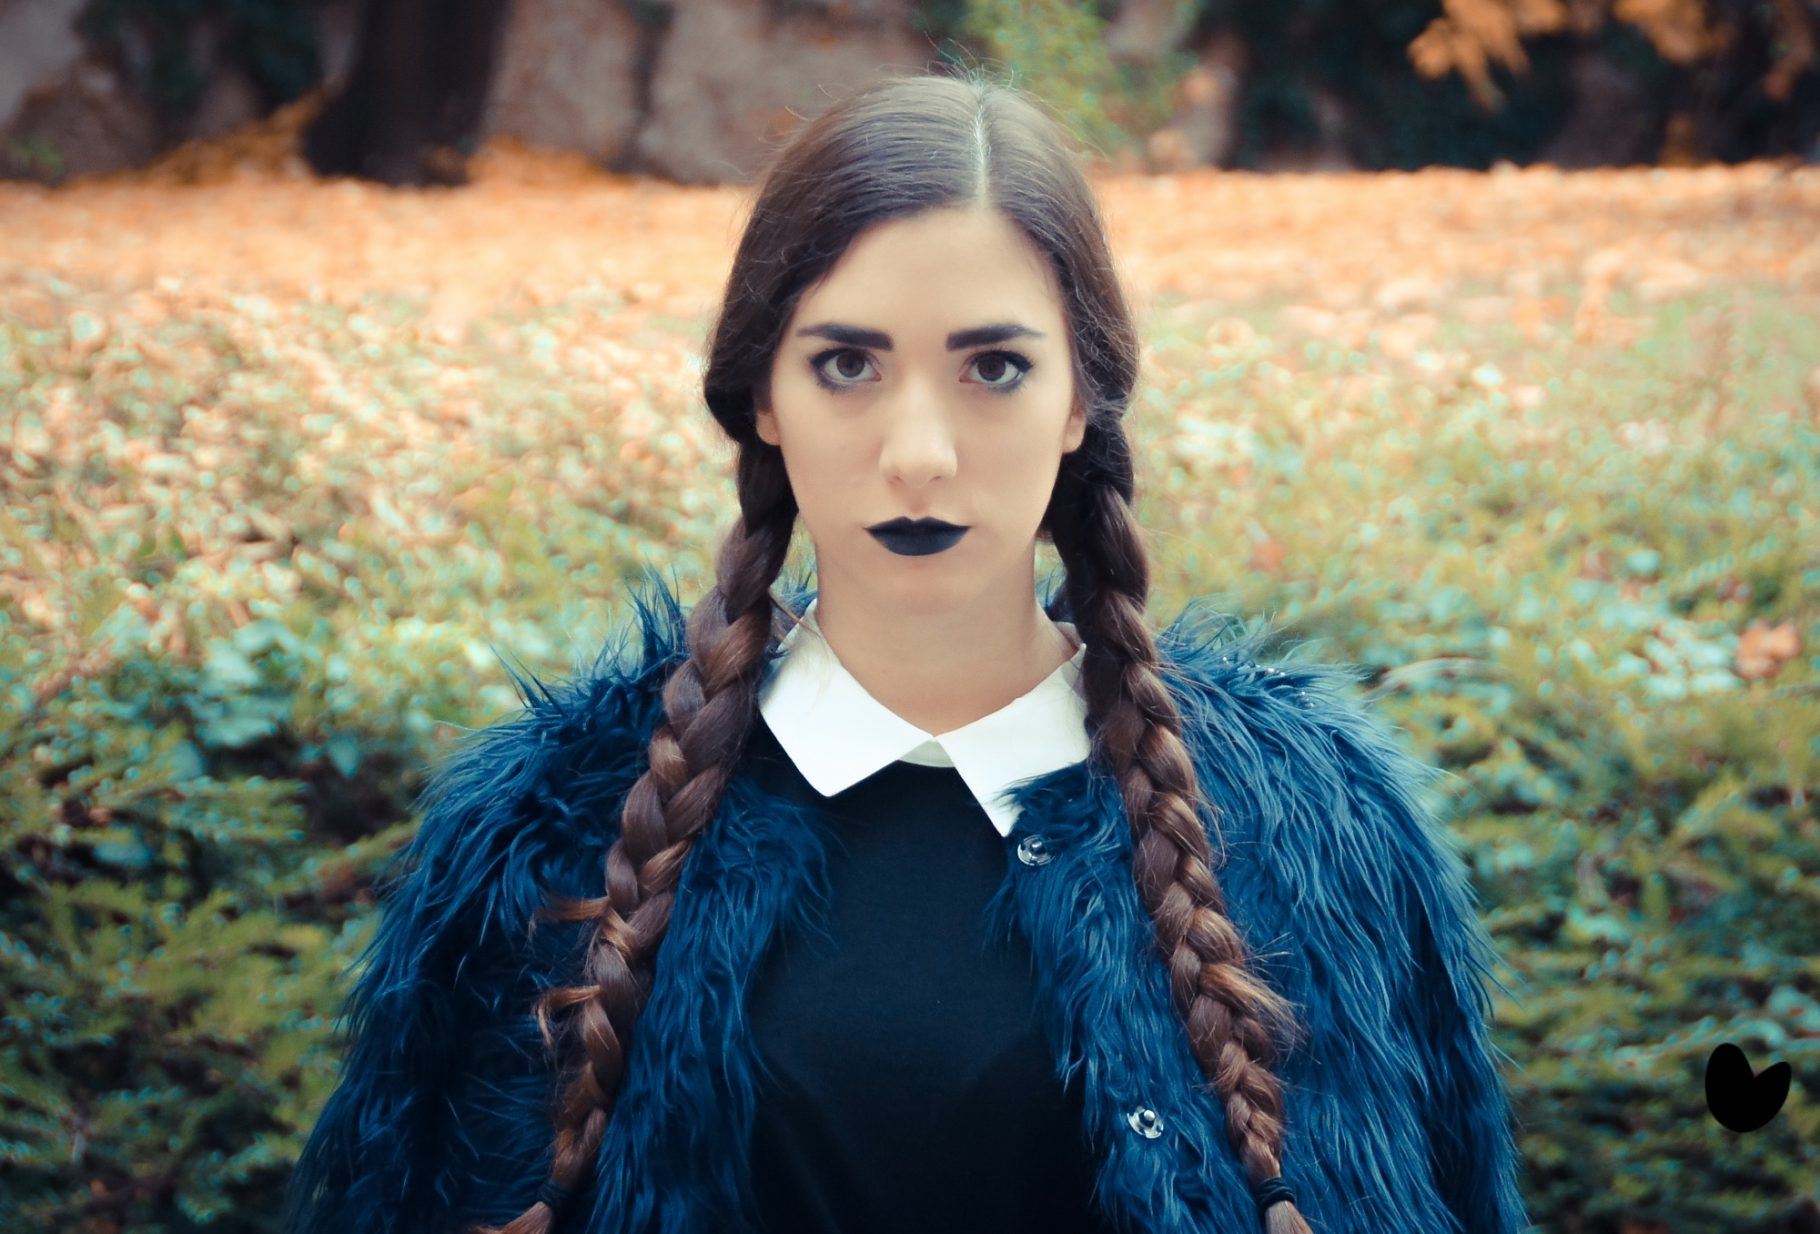 Look: Wednesday Addams